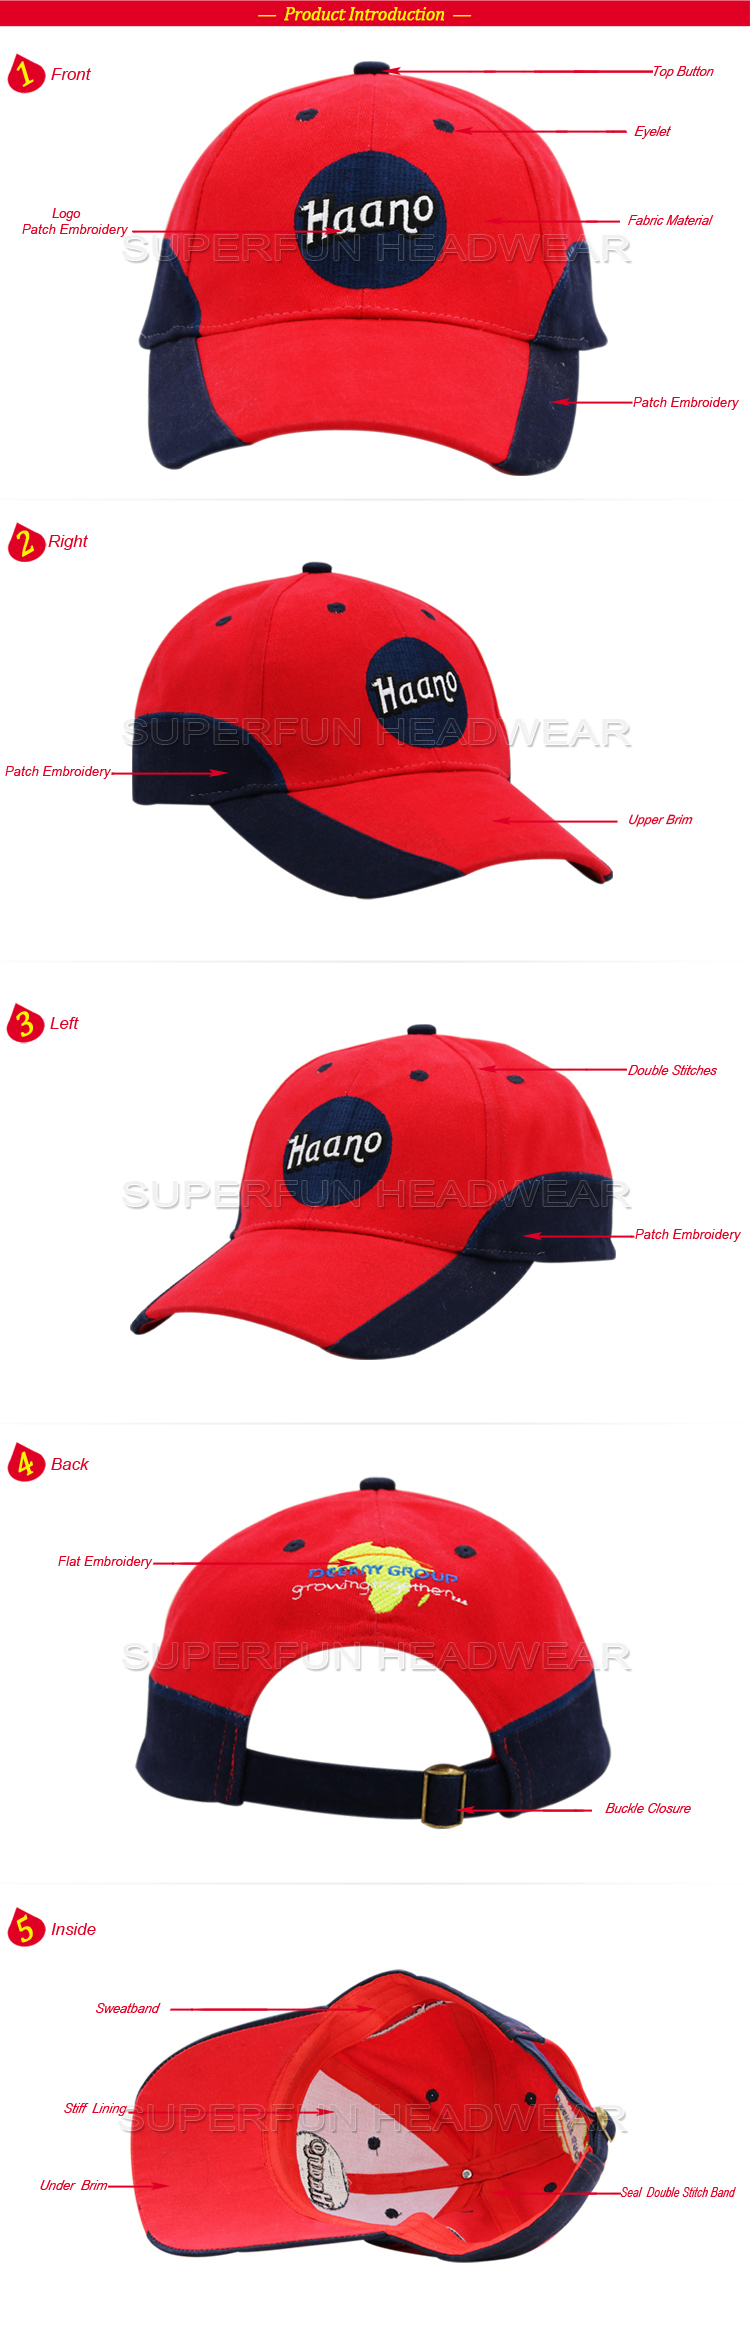 New Design Wholesale Baseball Cap Parts Kids Buy